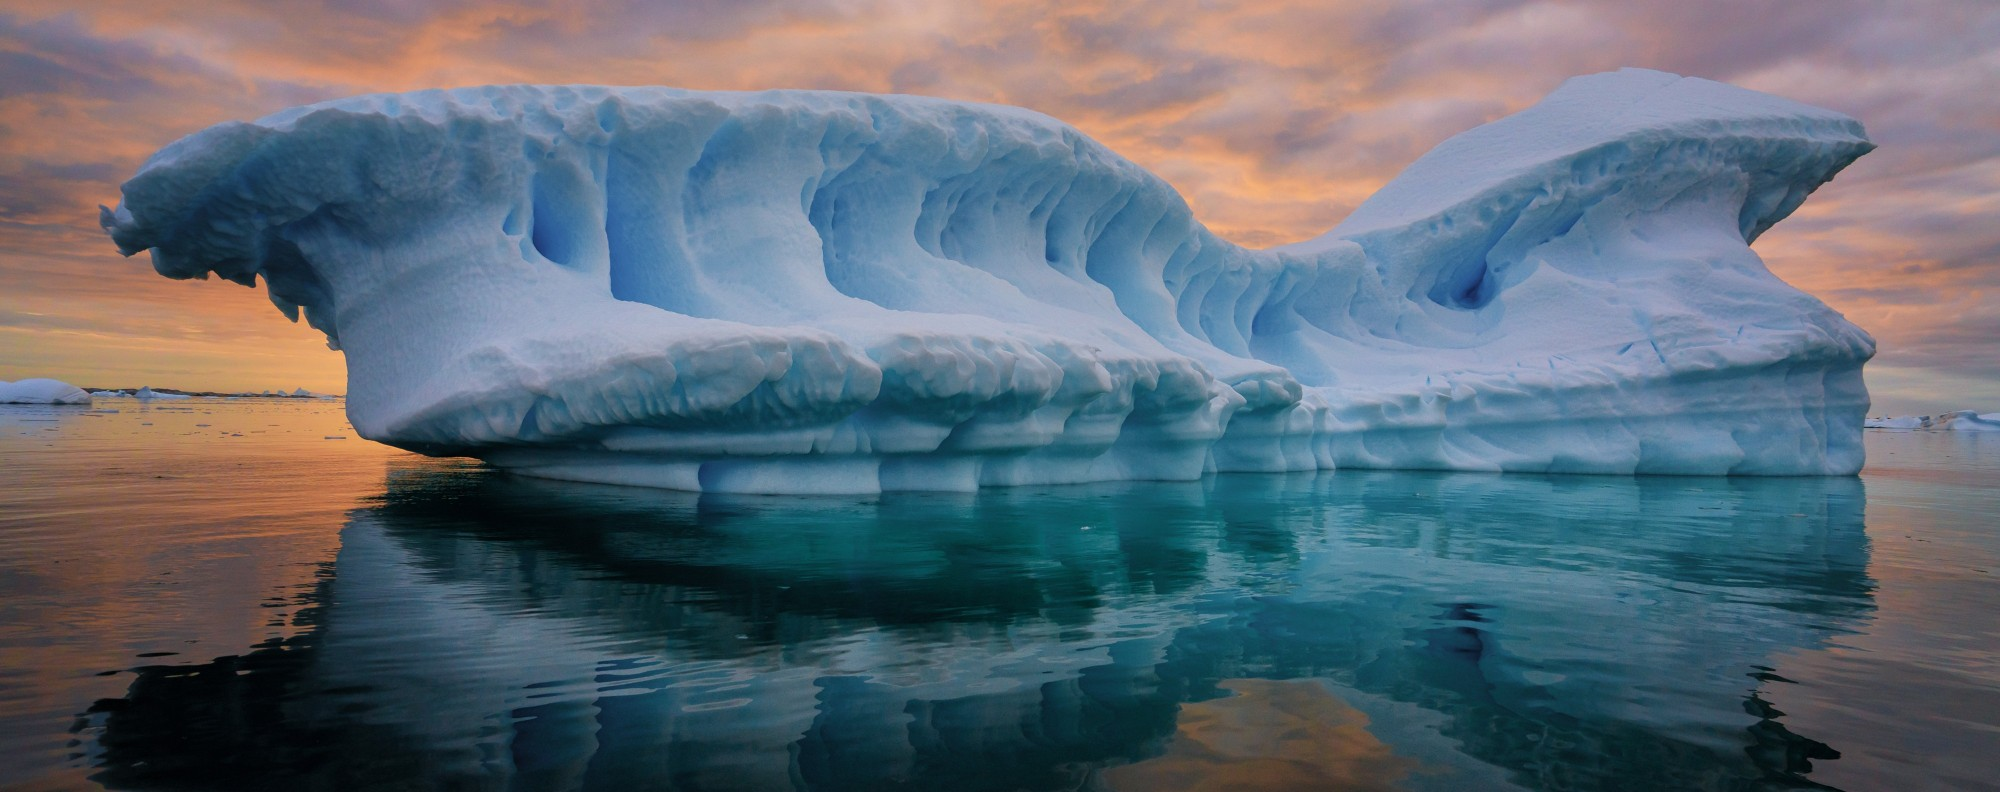 An iceberg in the Lemaire Channel, Antarctica. Picture: Keith Ladzinski